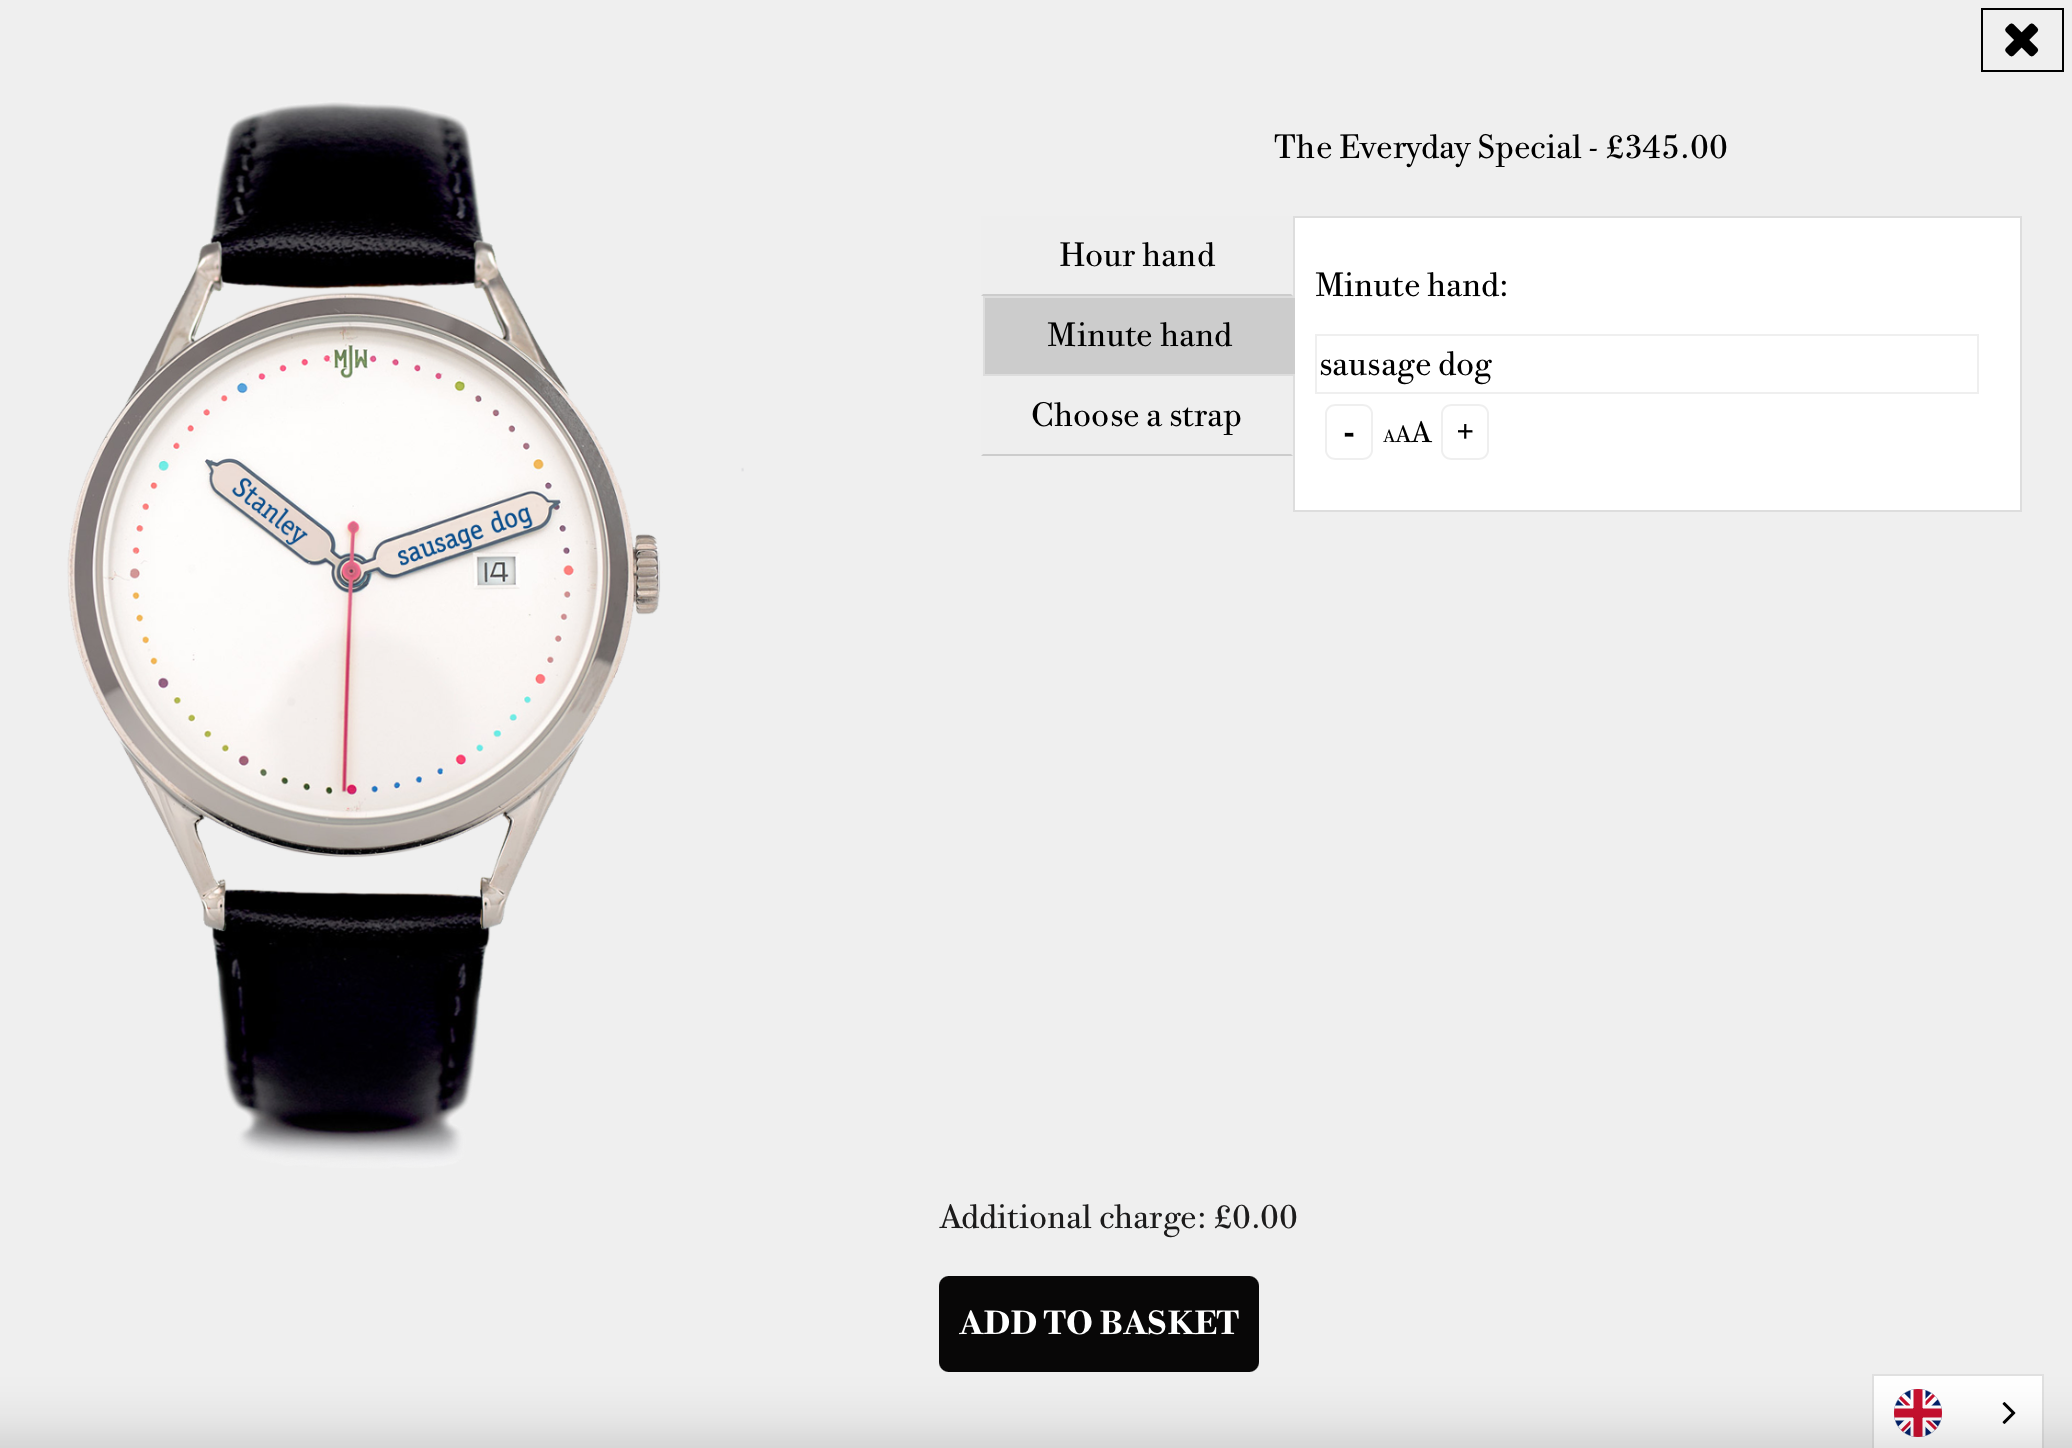 A watch with customisable hands